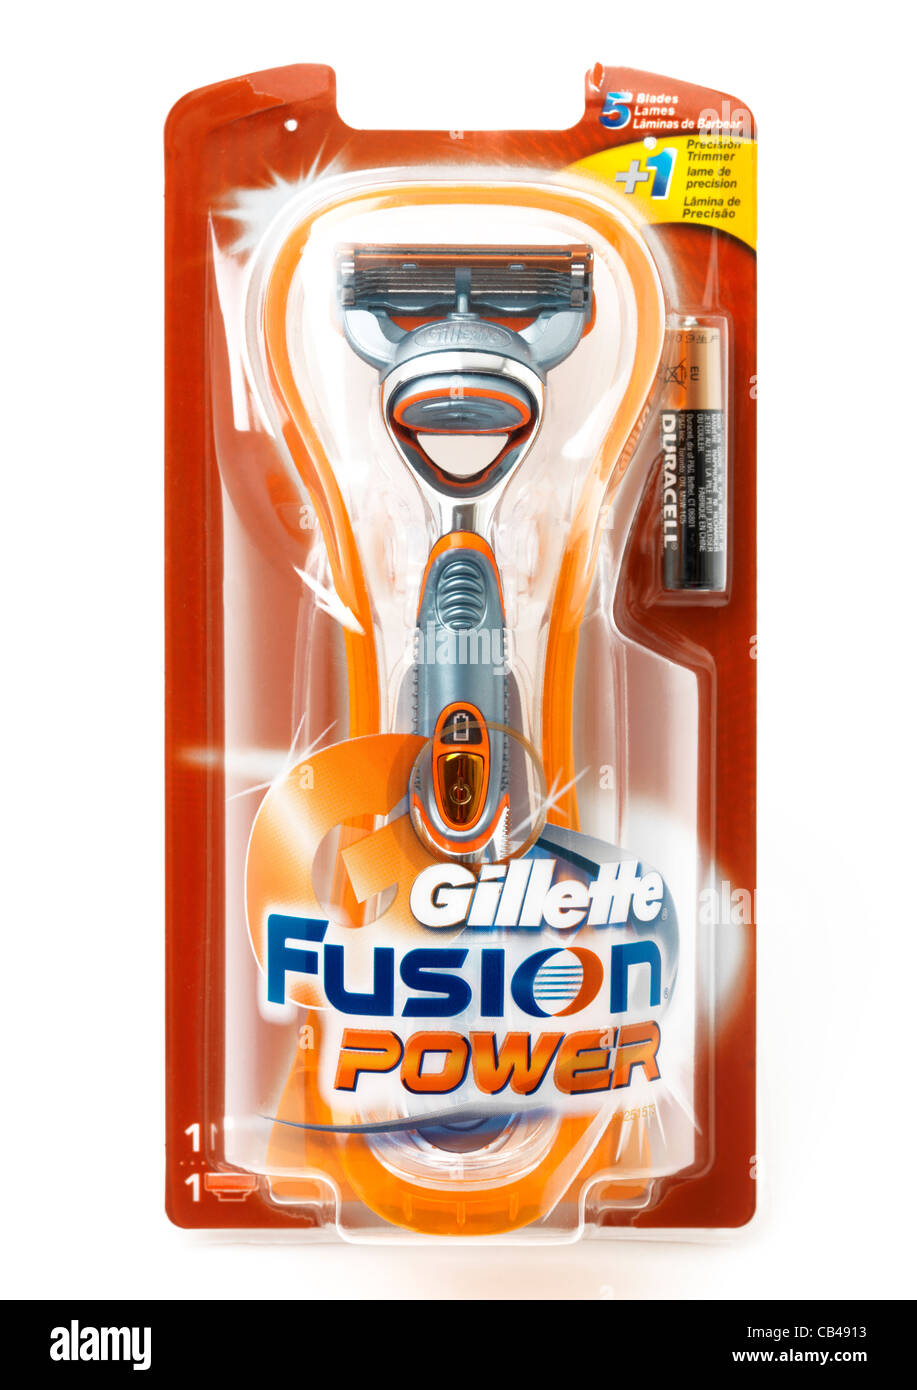 Gillette Fusion Power Razor And Battery In Packaging - Stock Image